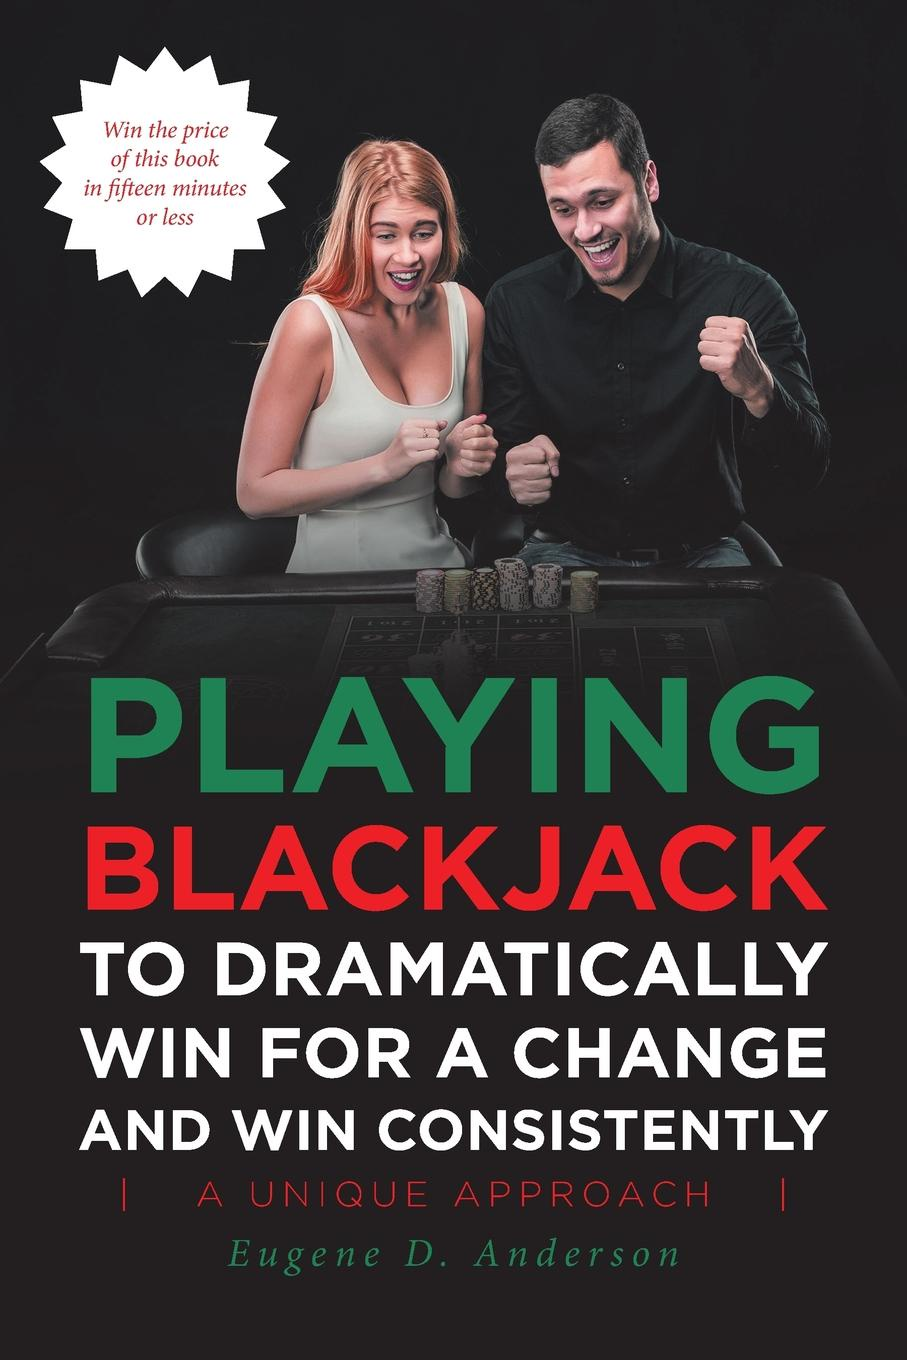 все цены на Eugene Anderson Playing Blackjack To Dramatically Win For A Change and Win Consistently онлайн